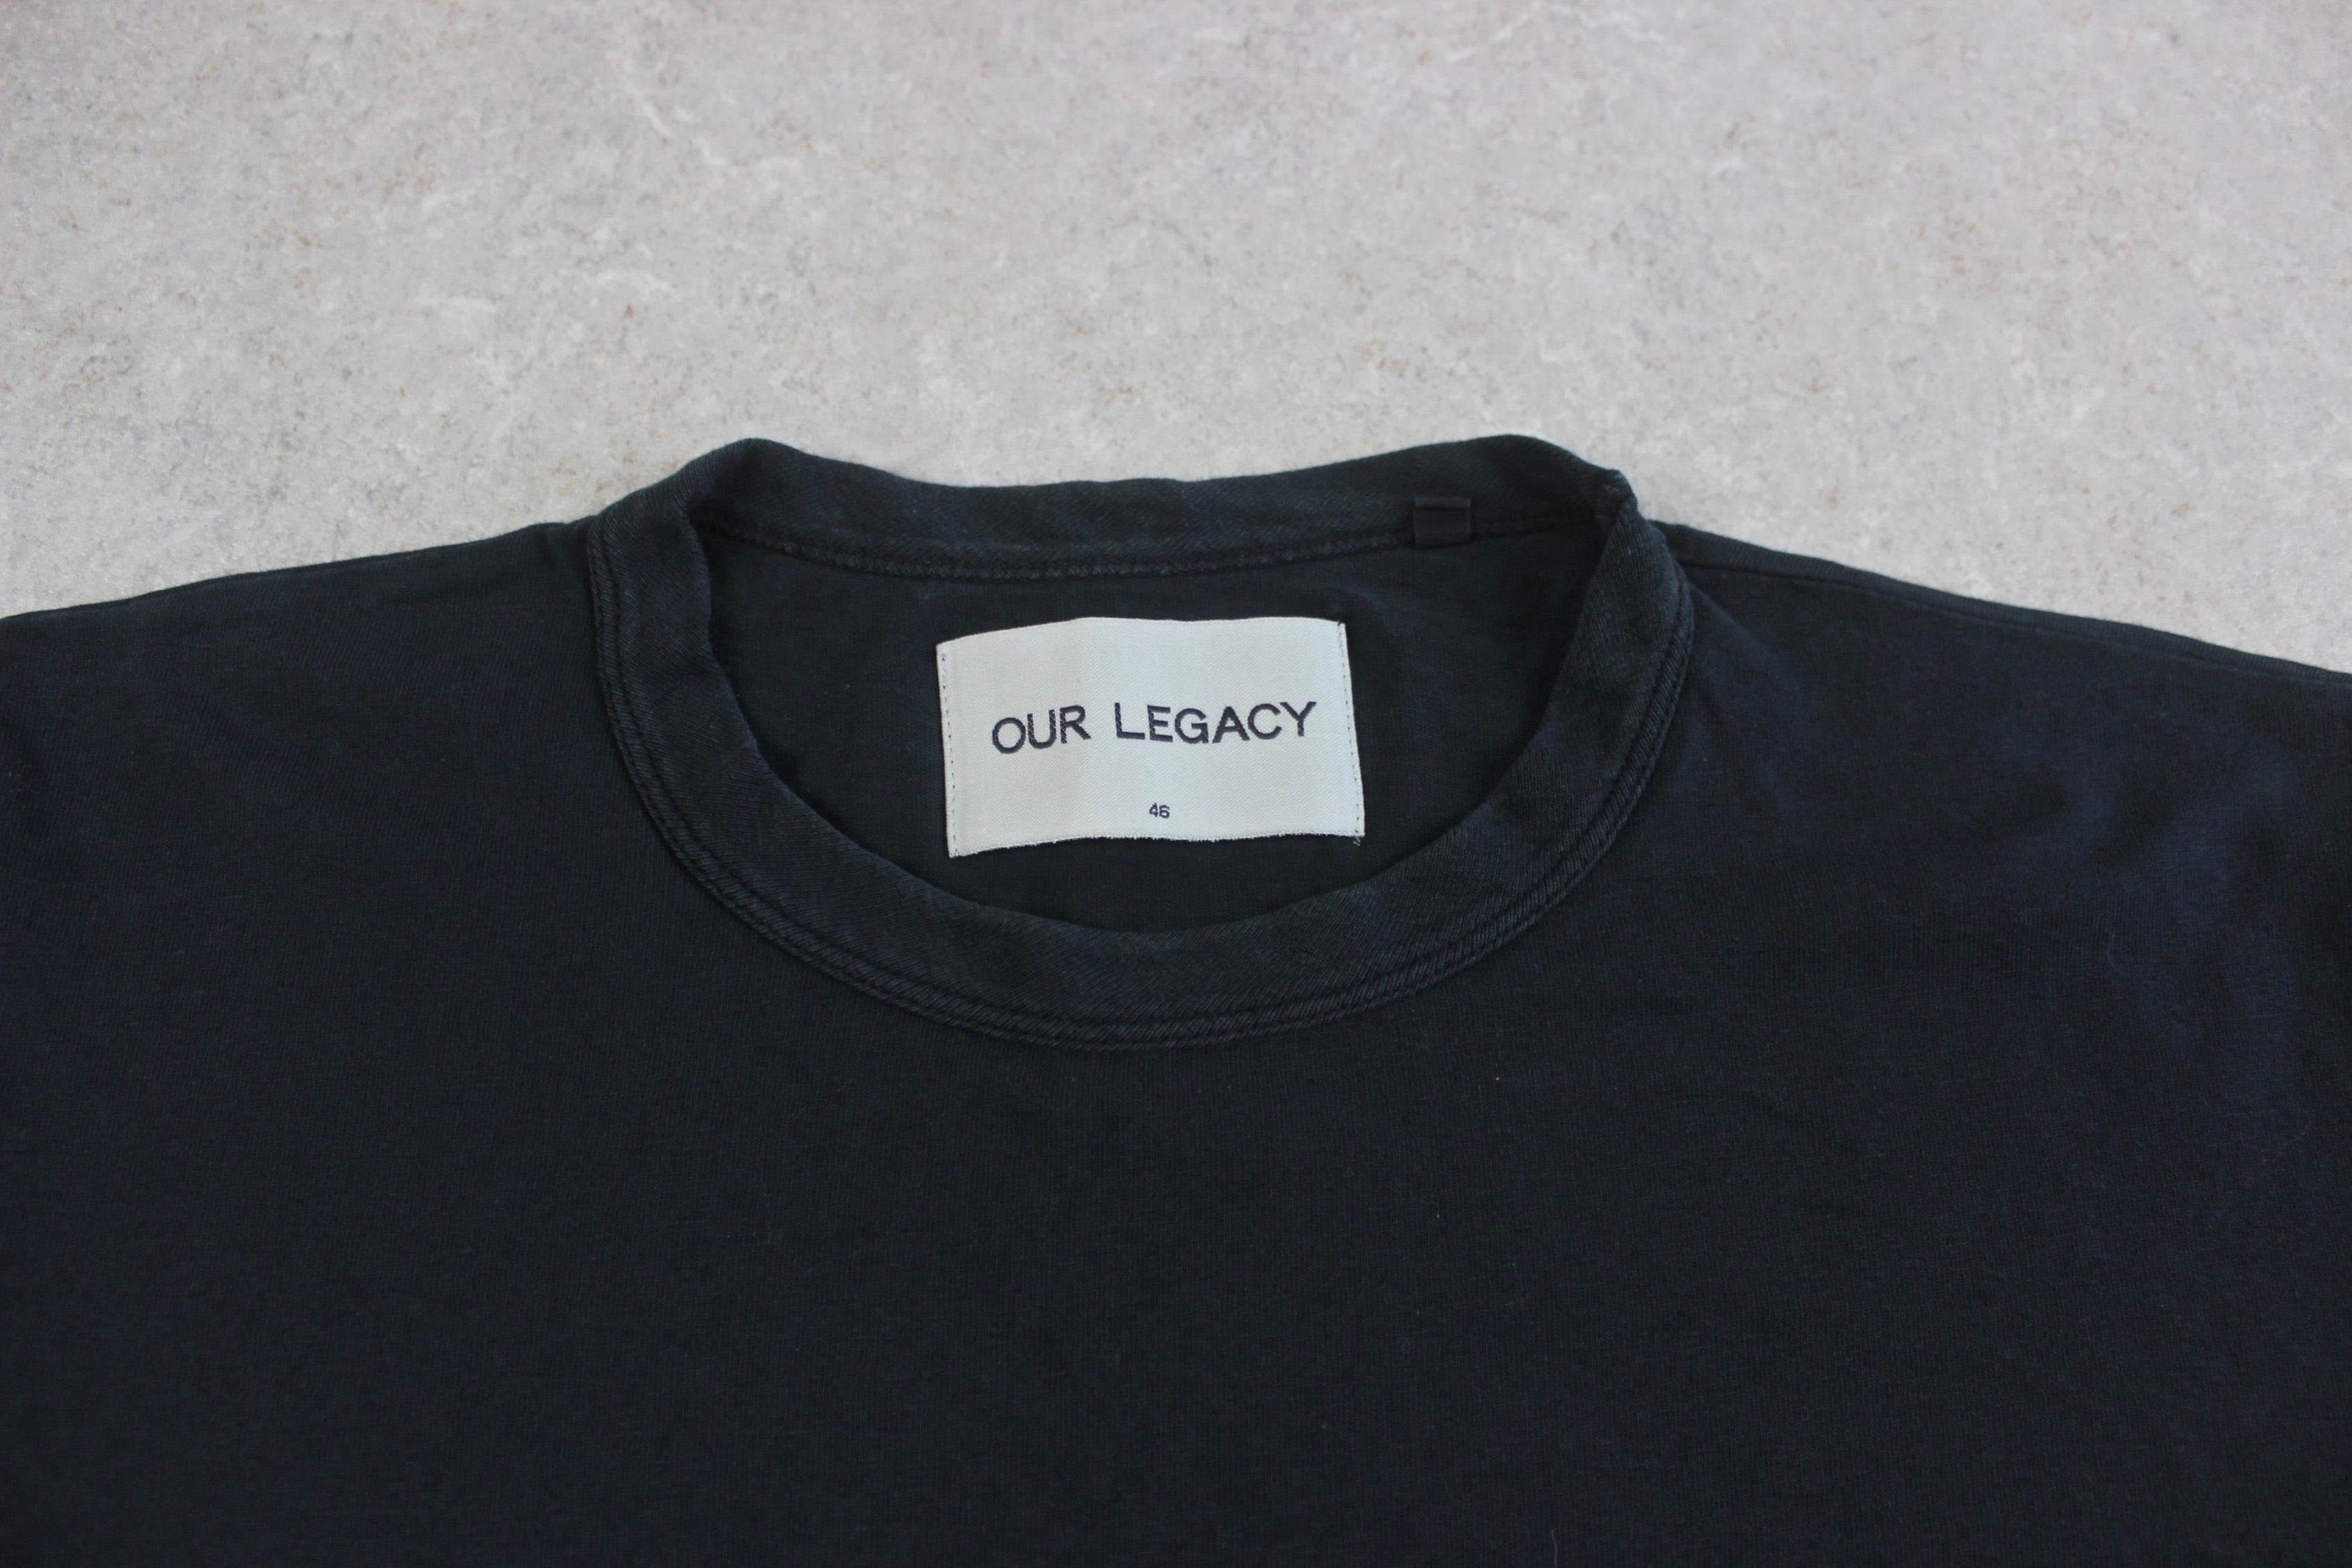 Our Legacy - T Shirt - Green - 46/Small